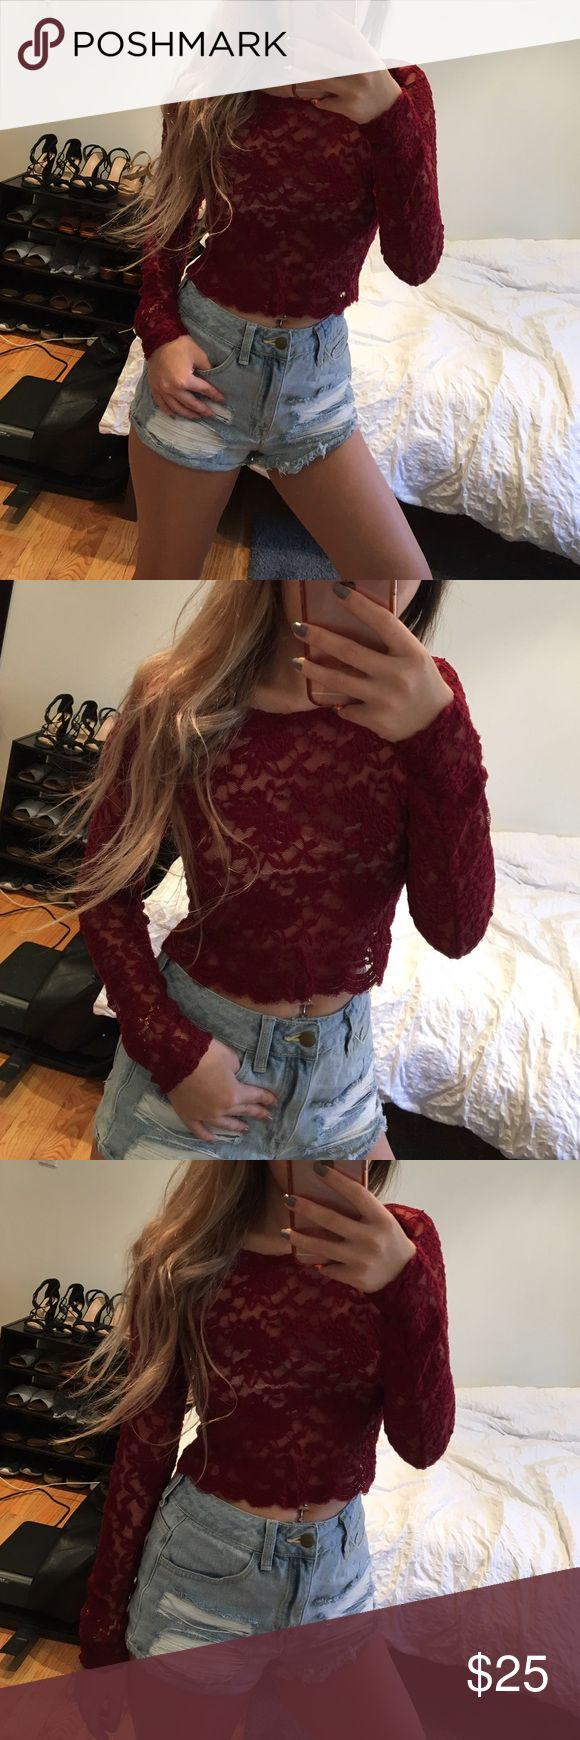 Maroon Floral Laced Crop Top Comes with a beige bandeau. Excellent condition. Feel free to make an offer. No Trades. Forever 21 Tops Crop Tops